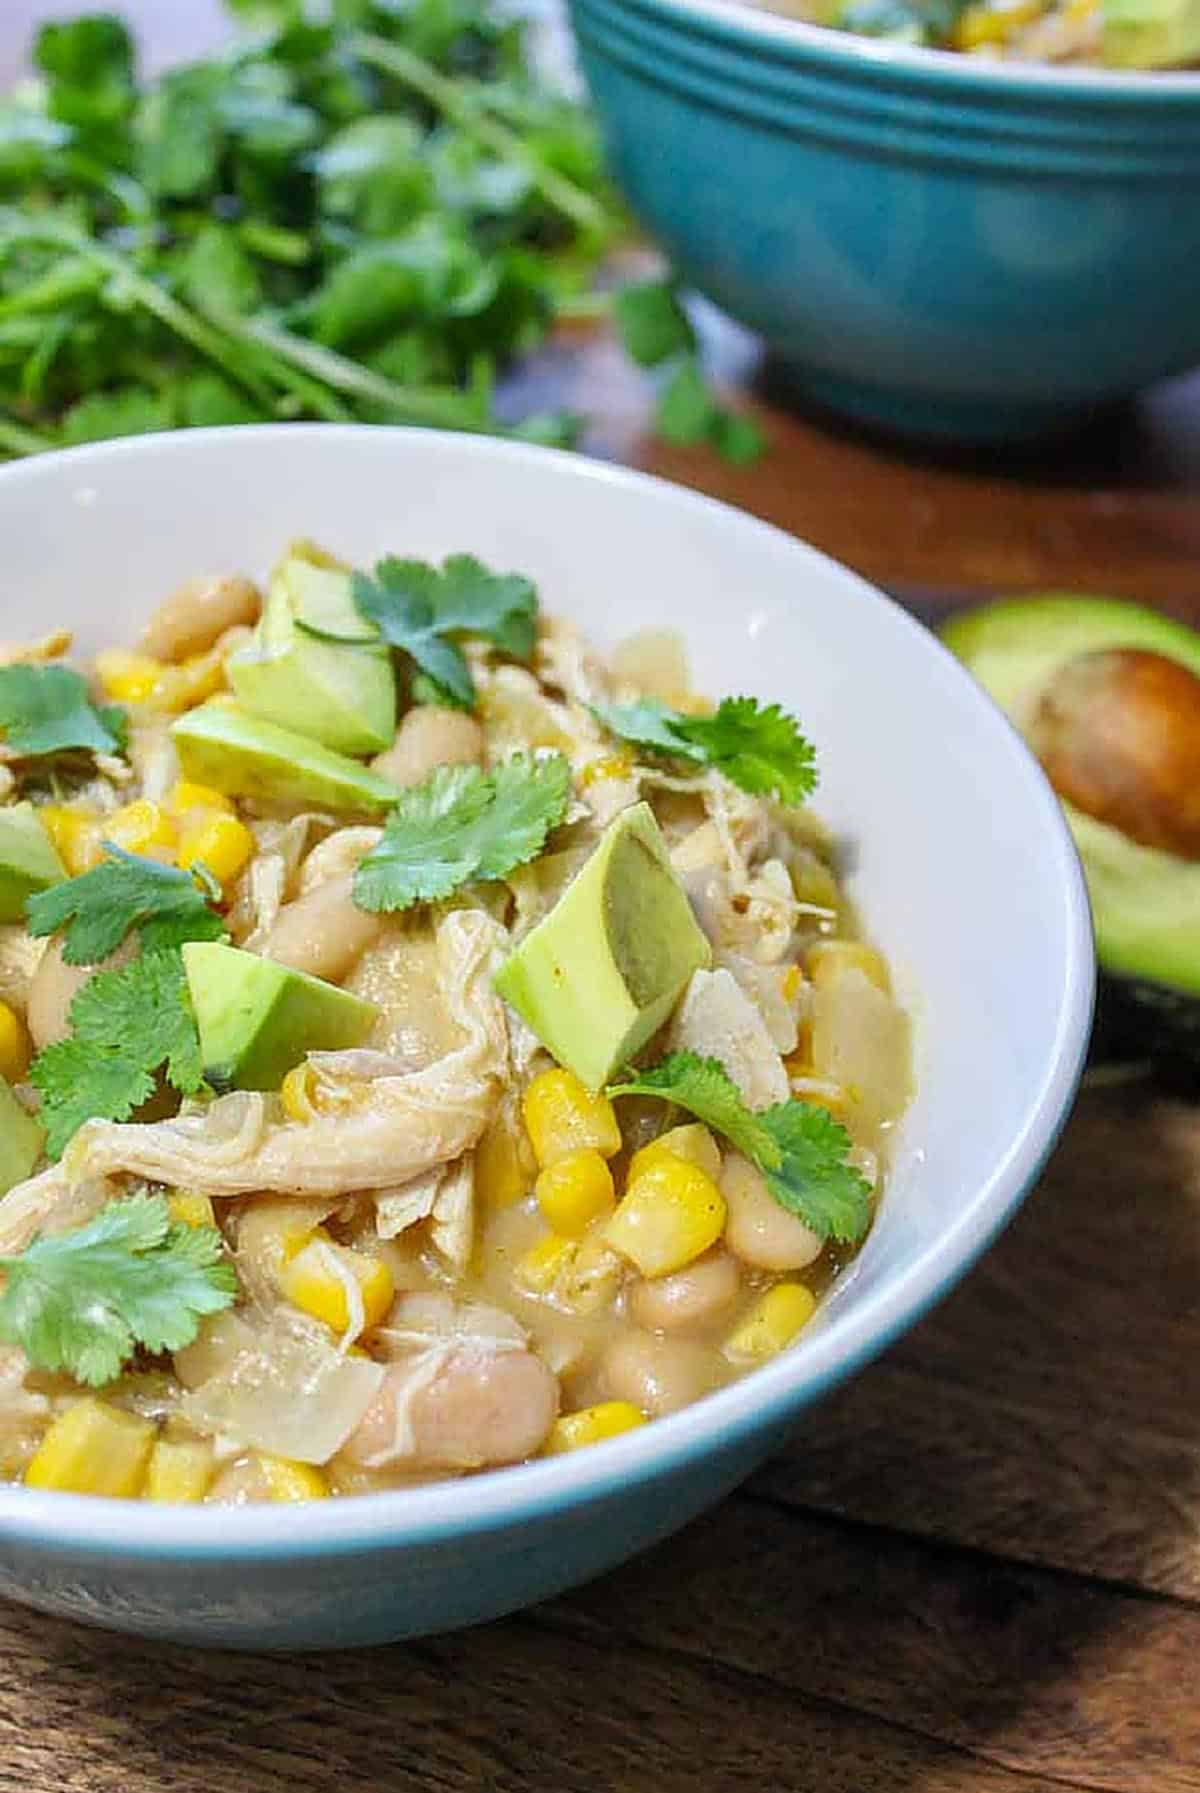 Bowl of slow cooker white chicken chili with chopped avocado and cilantro on top